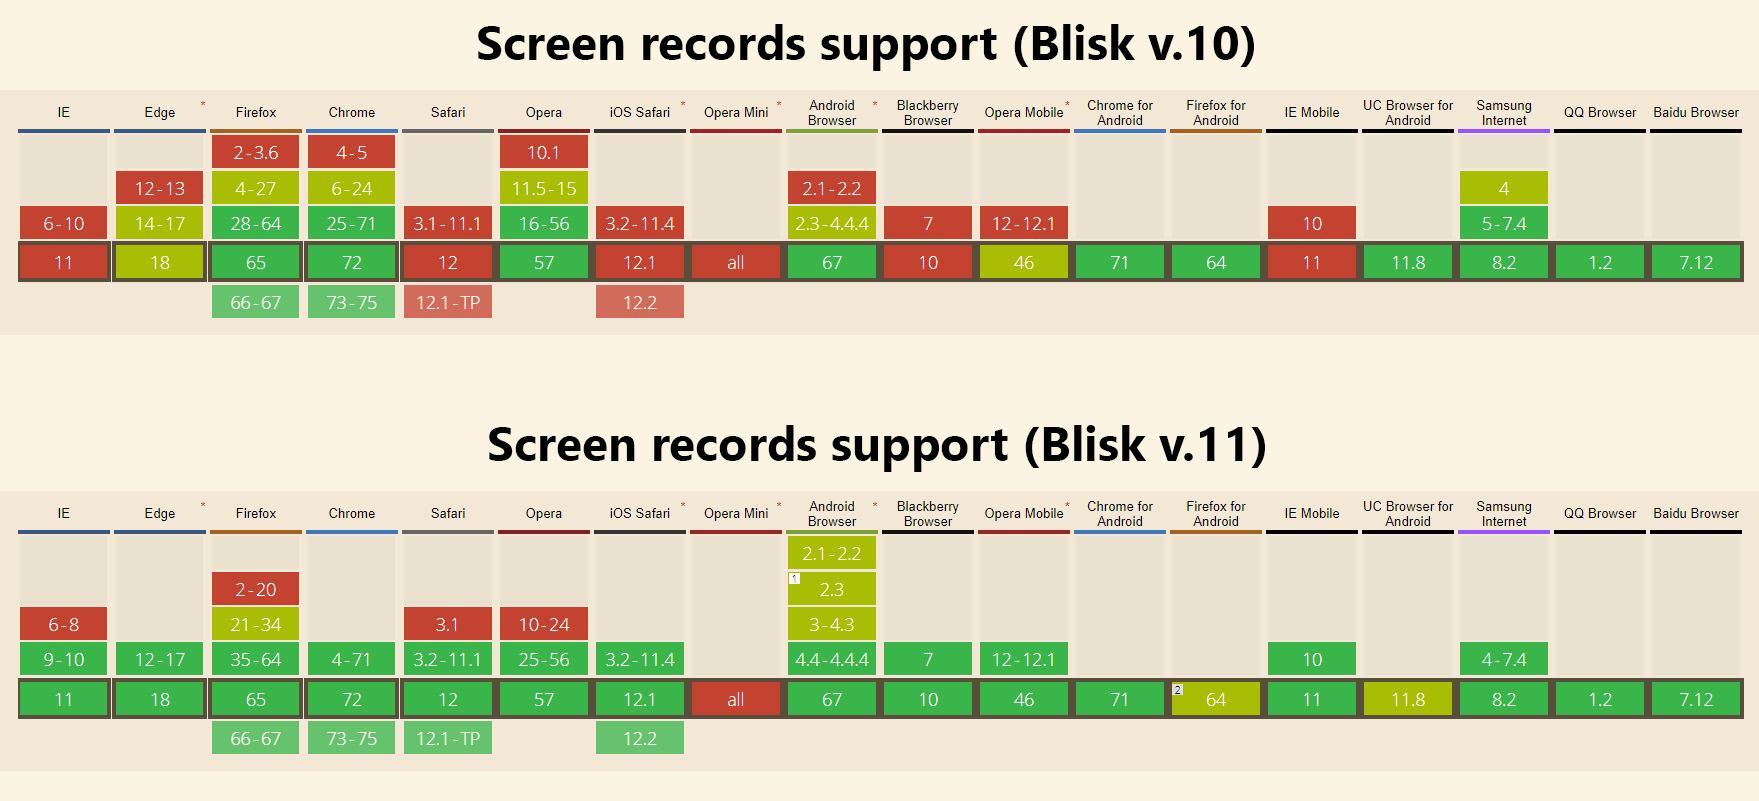 New screen records support in Blisk v.11